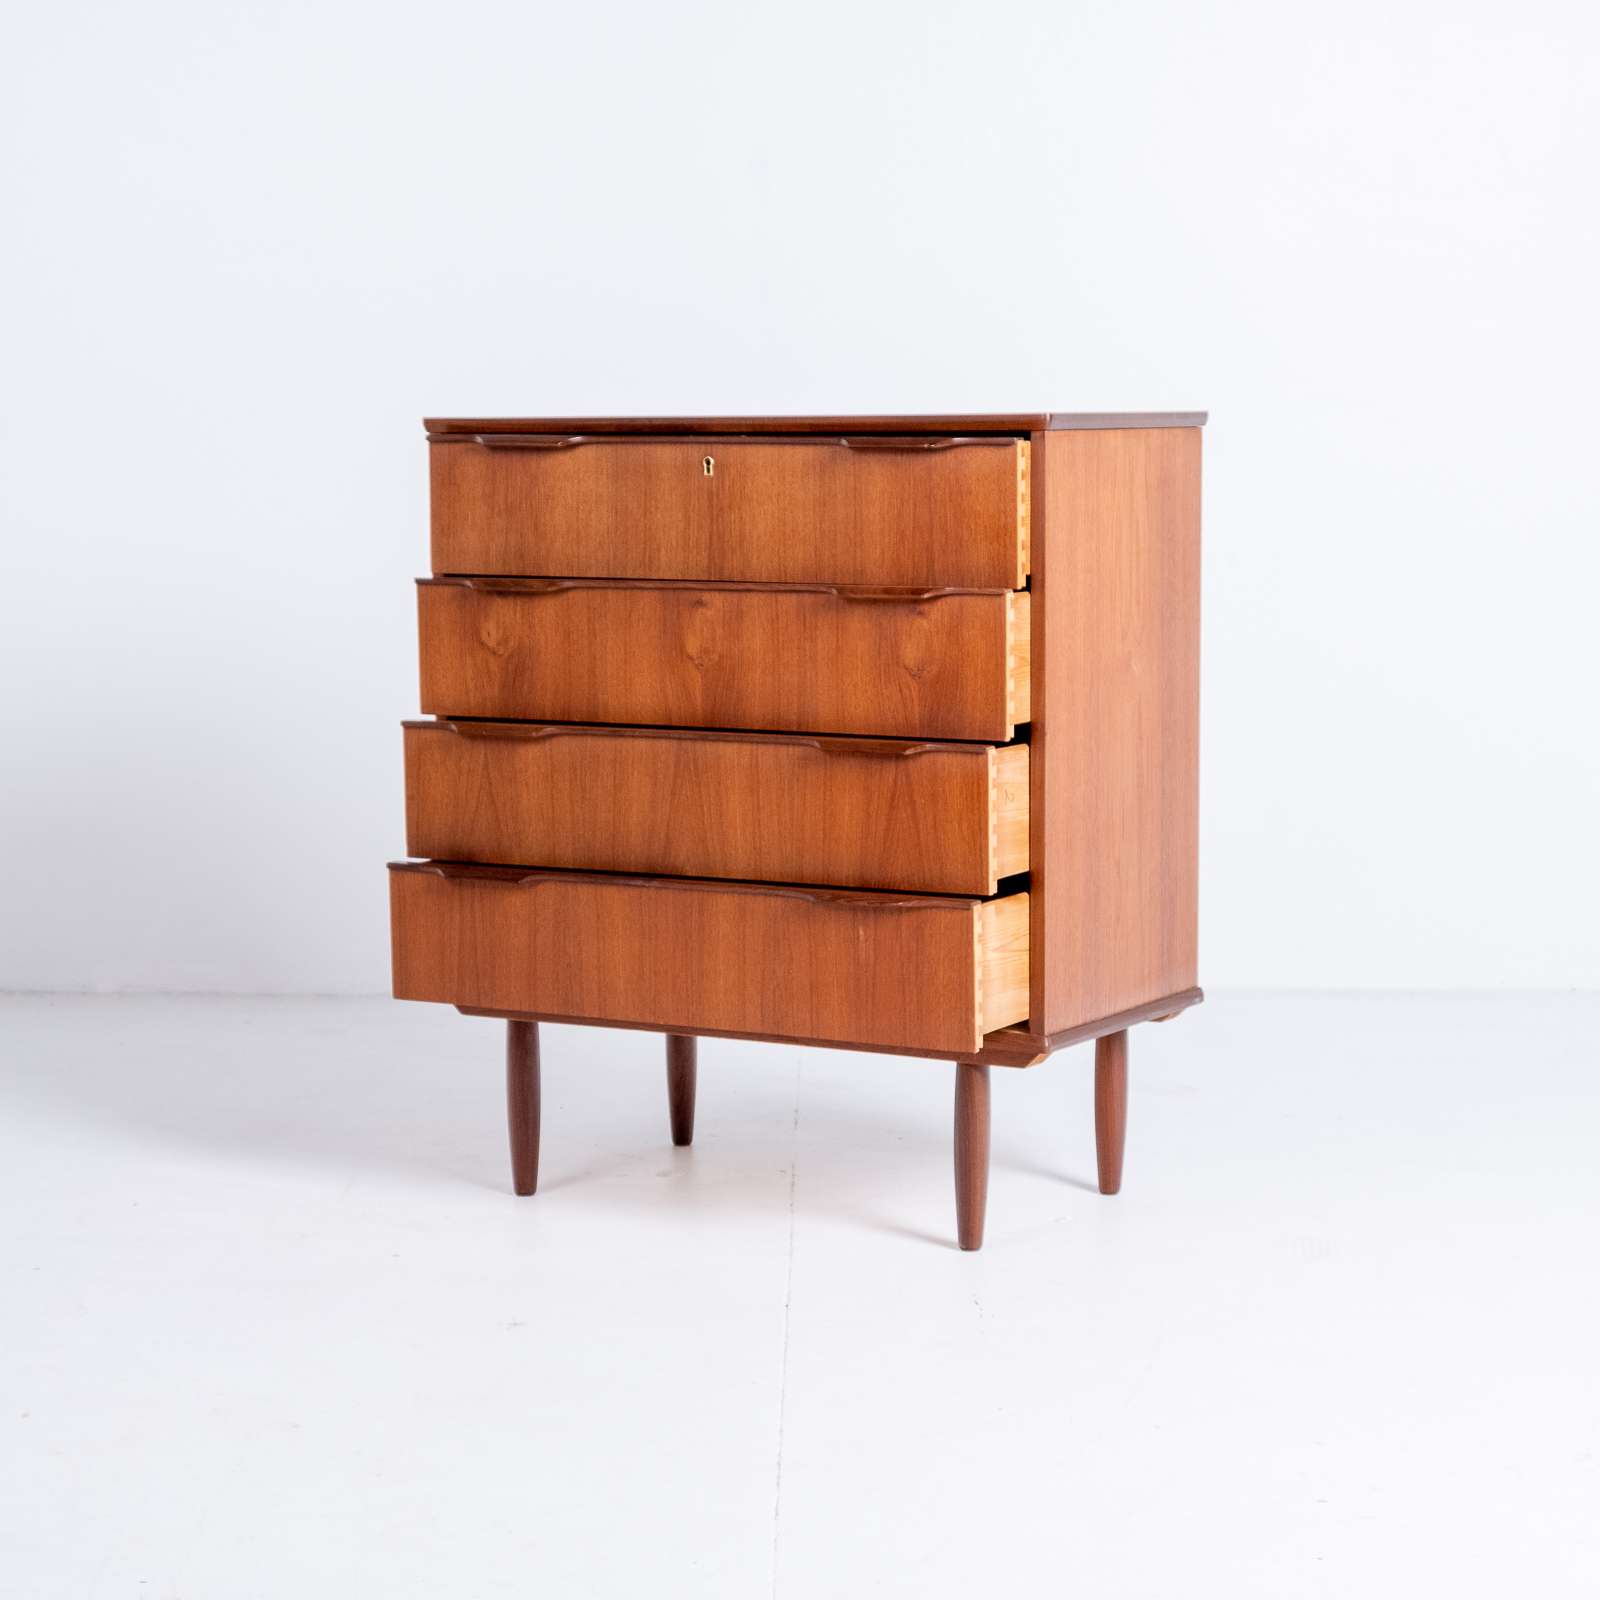 Chest Of Drawers In Teak, 1960s, Denmark6